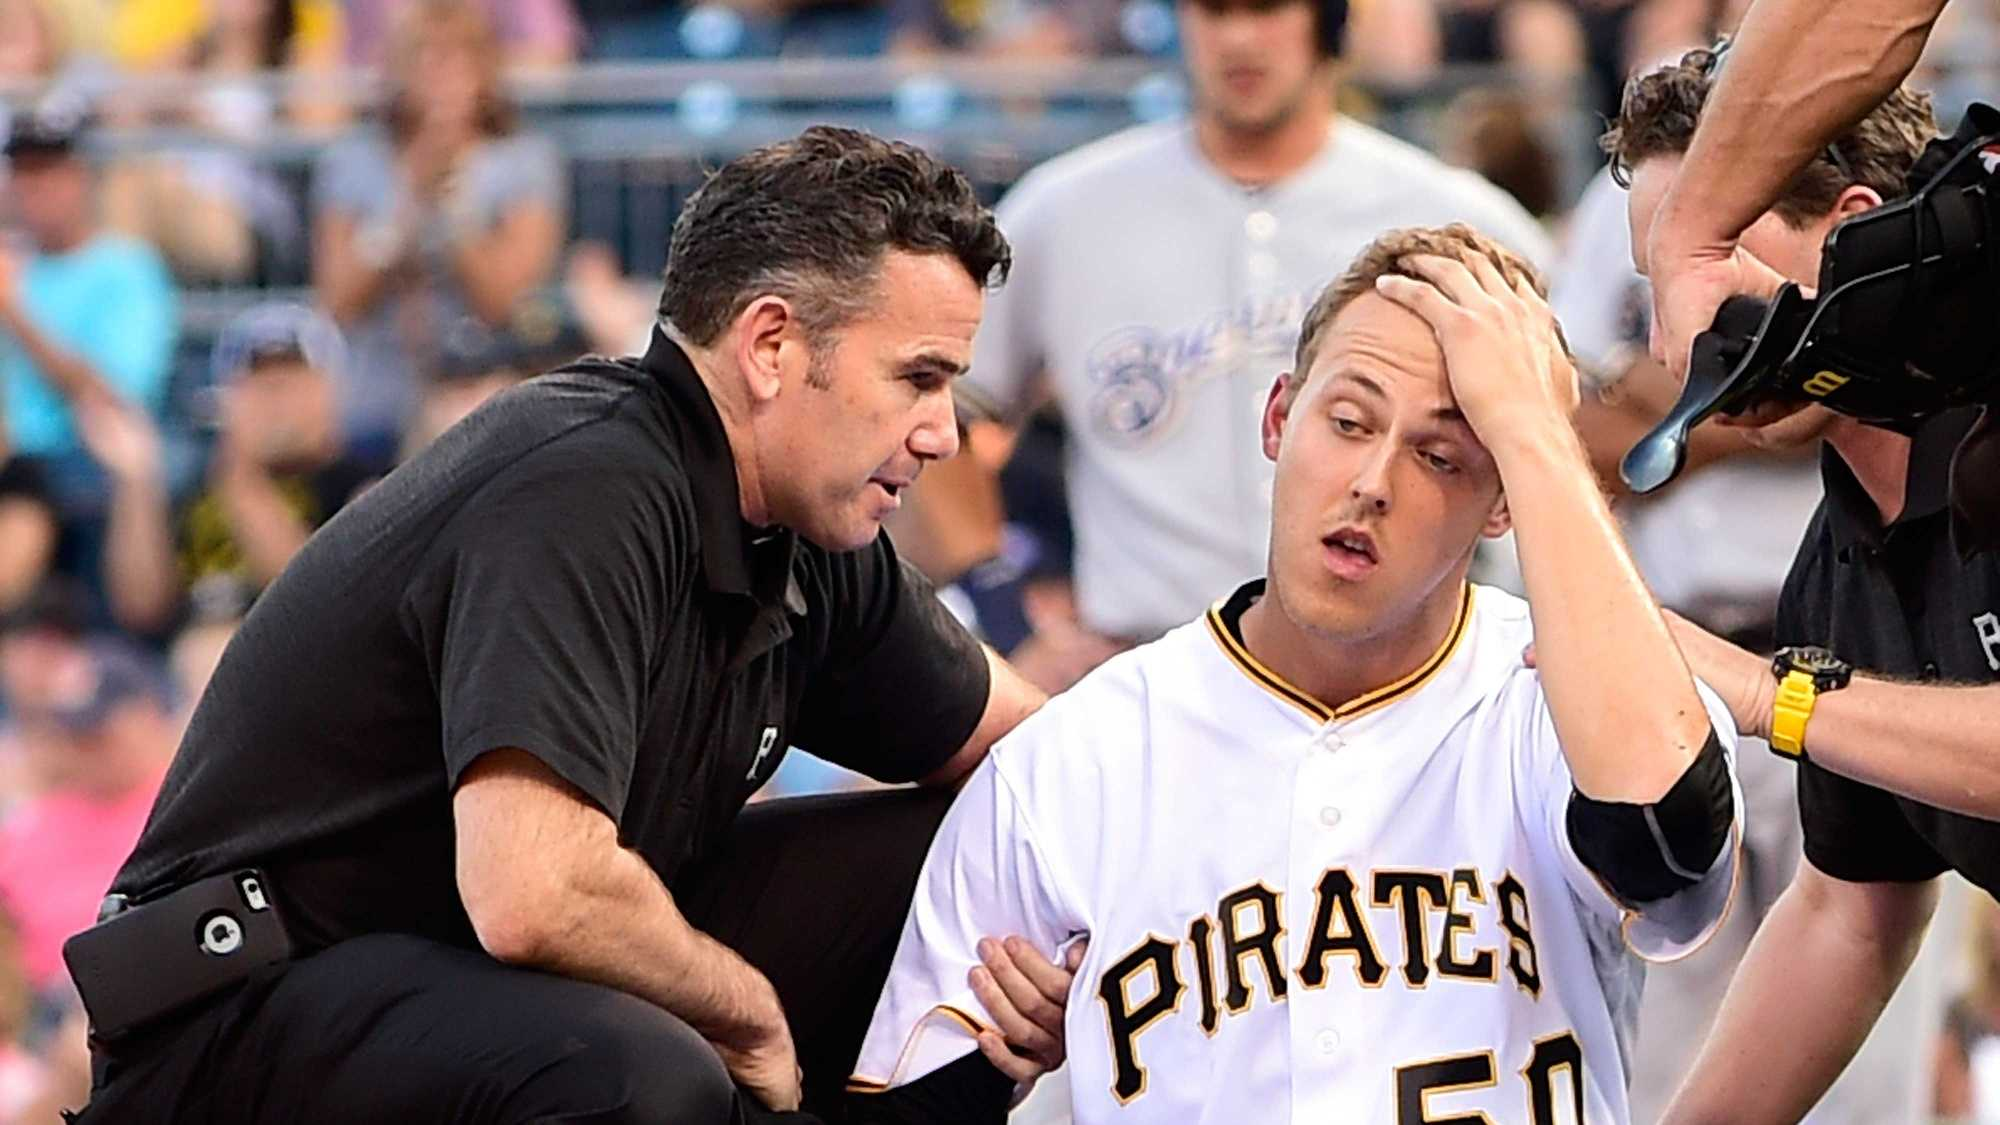 Athletic trainer Ben Potenziano, left, watches Pittsburgh Pirates starting pitcher Jameson Taillon (50) hold his head in the second inning of a baseball game against the Milwaukee Brewers in Pittsburgh, Tuesday, July 19, 2016. Taillon was hit by a ball off the bat of Herman Perez, but stayed in the game. (AP Photo/Fred Vuich)